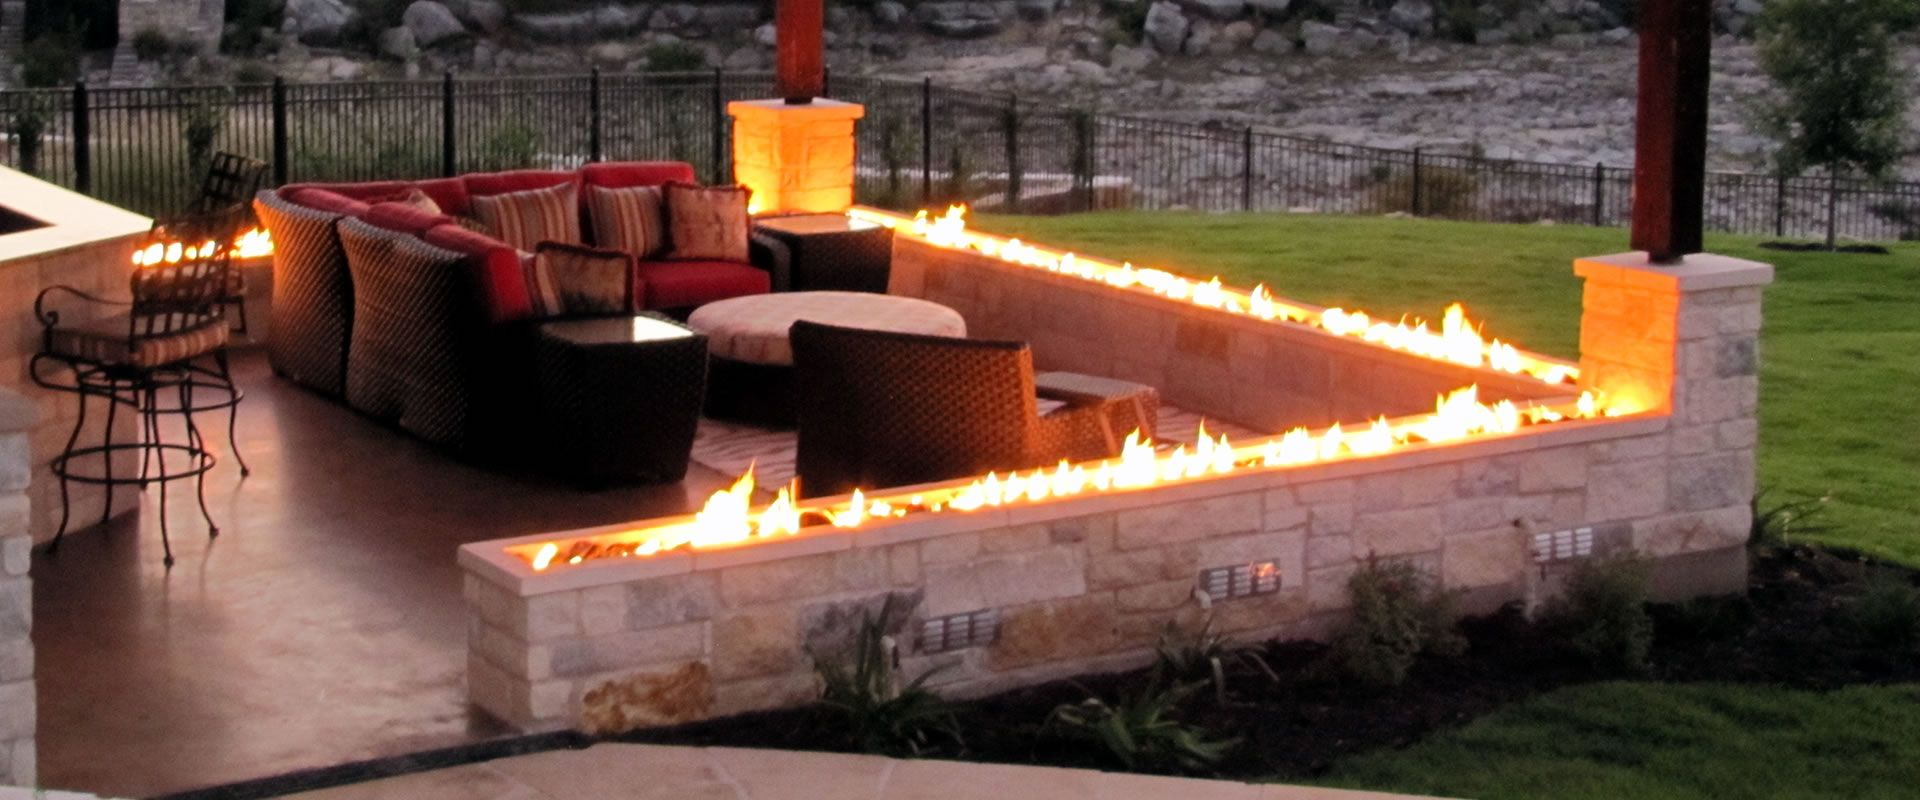 fire by design remote control module for outdoor firepits